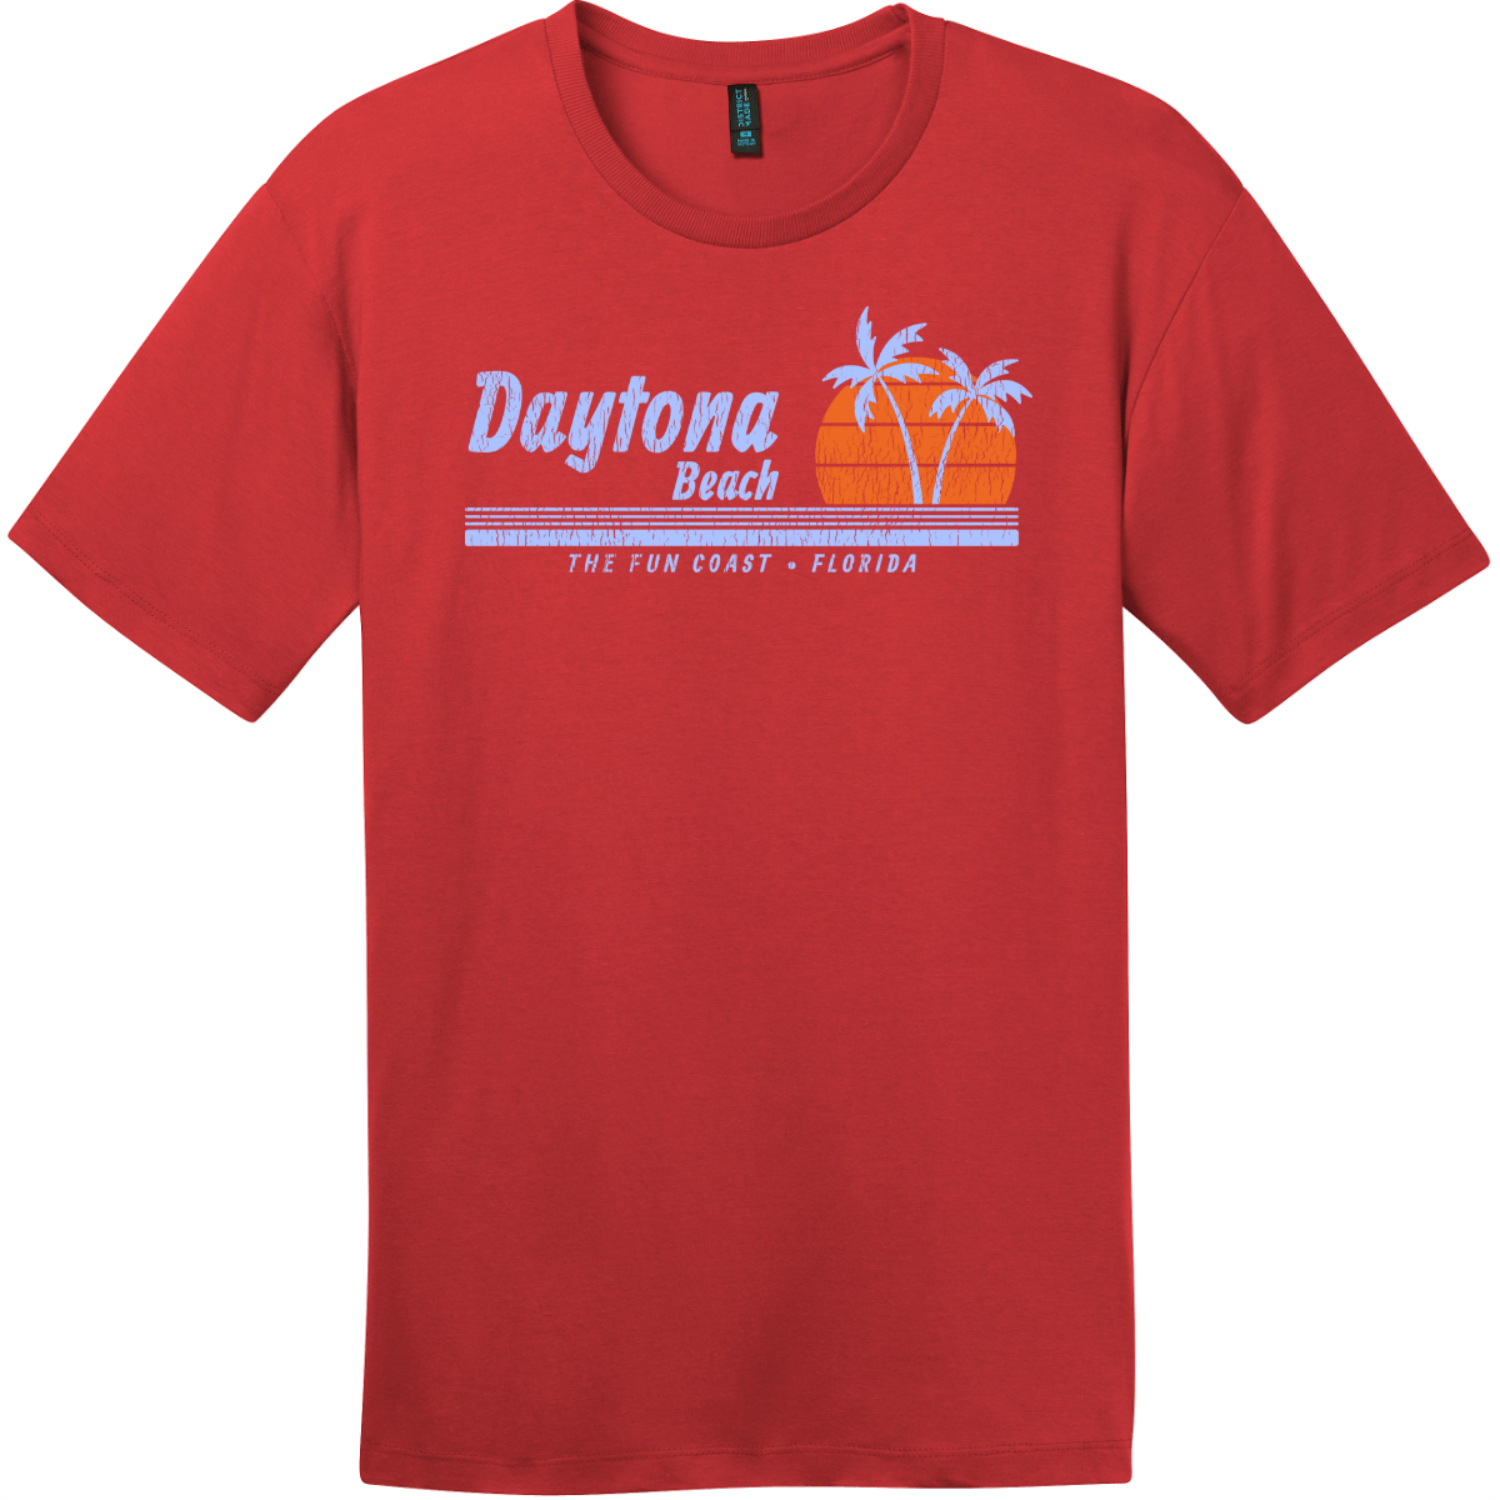 Daytona Beach Florida Fun Coast T-Shirt Classic Red District Perfect Weight Tee DT104